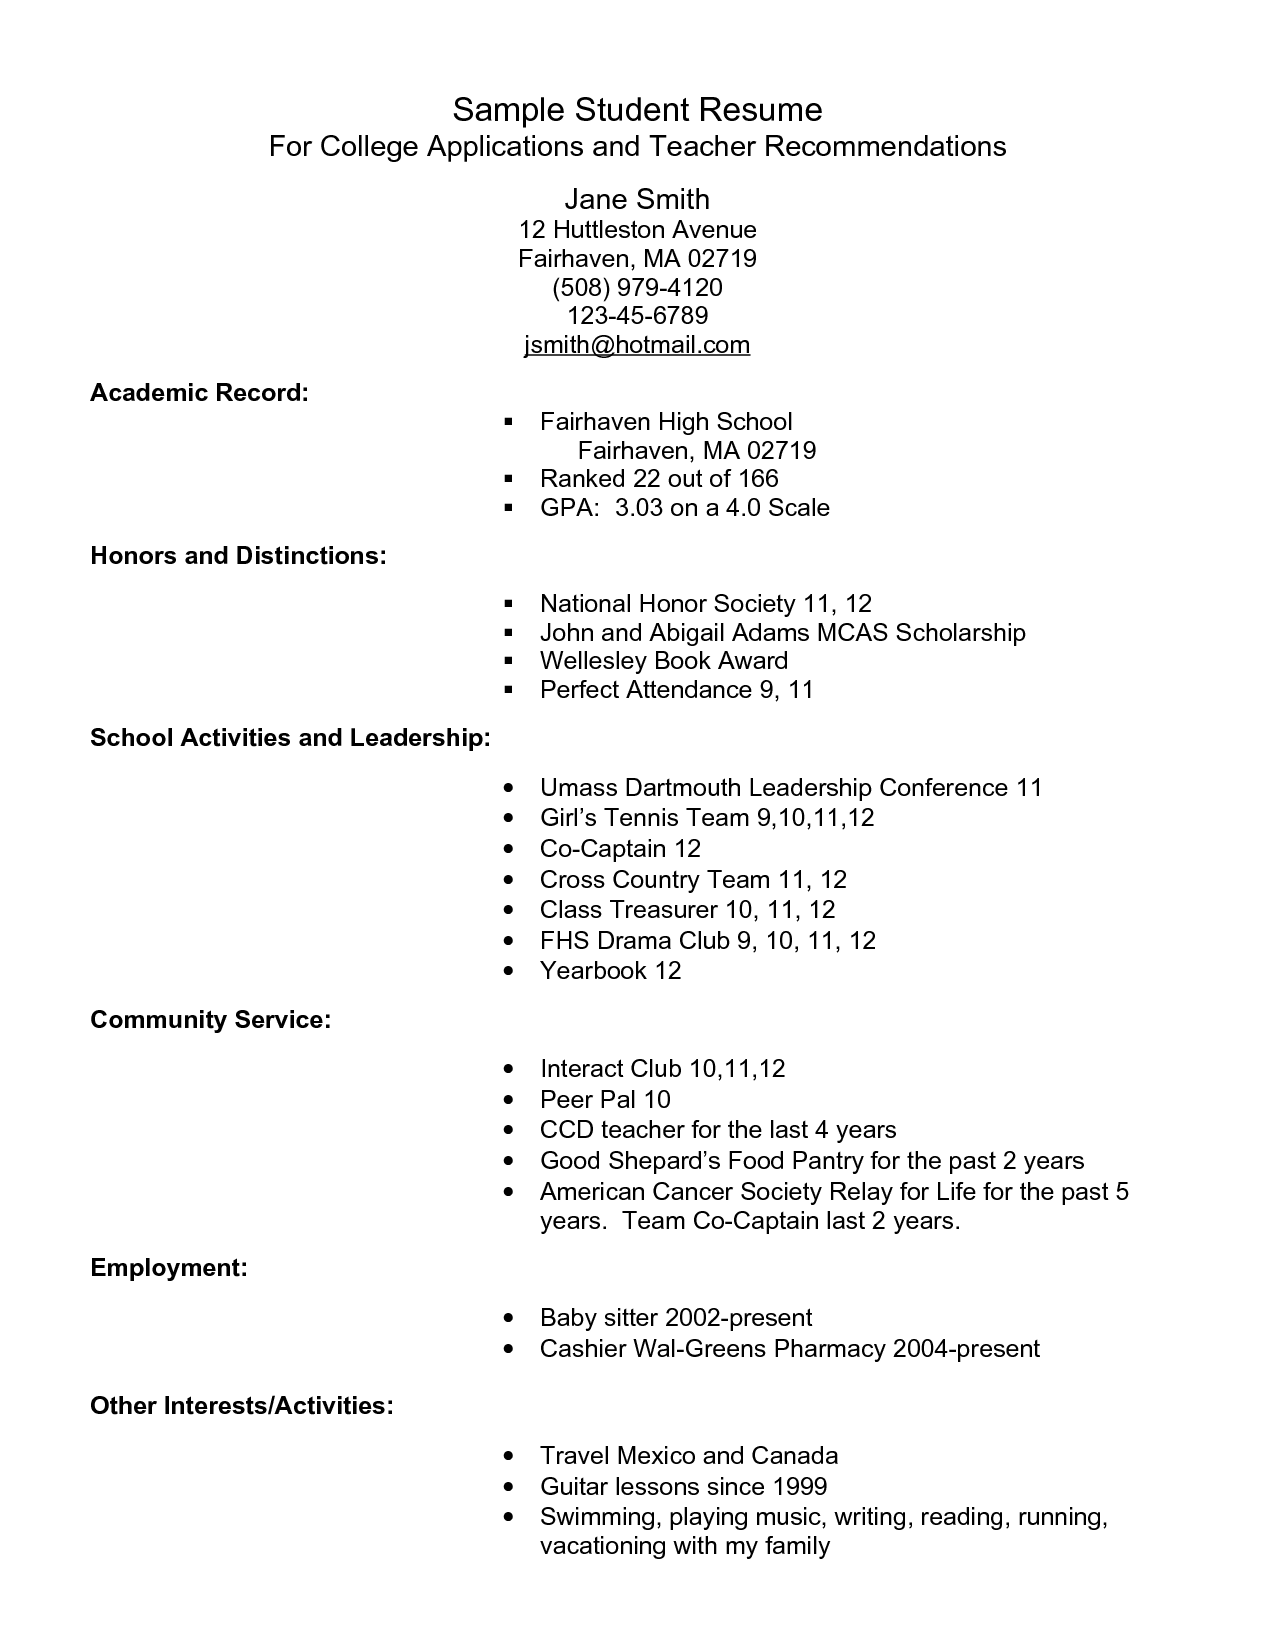 Free Student Resume Templates Adorable Example Resume For High School Students For College Applications